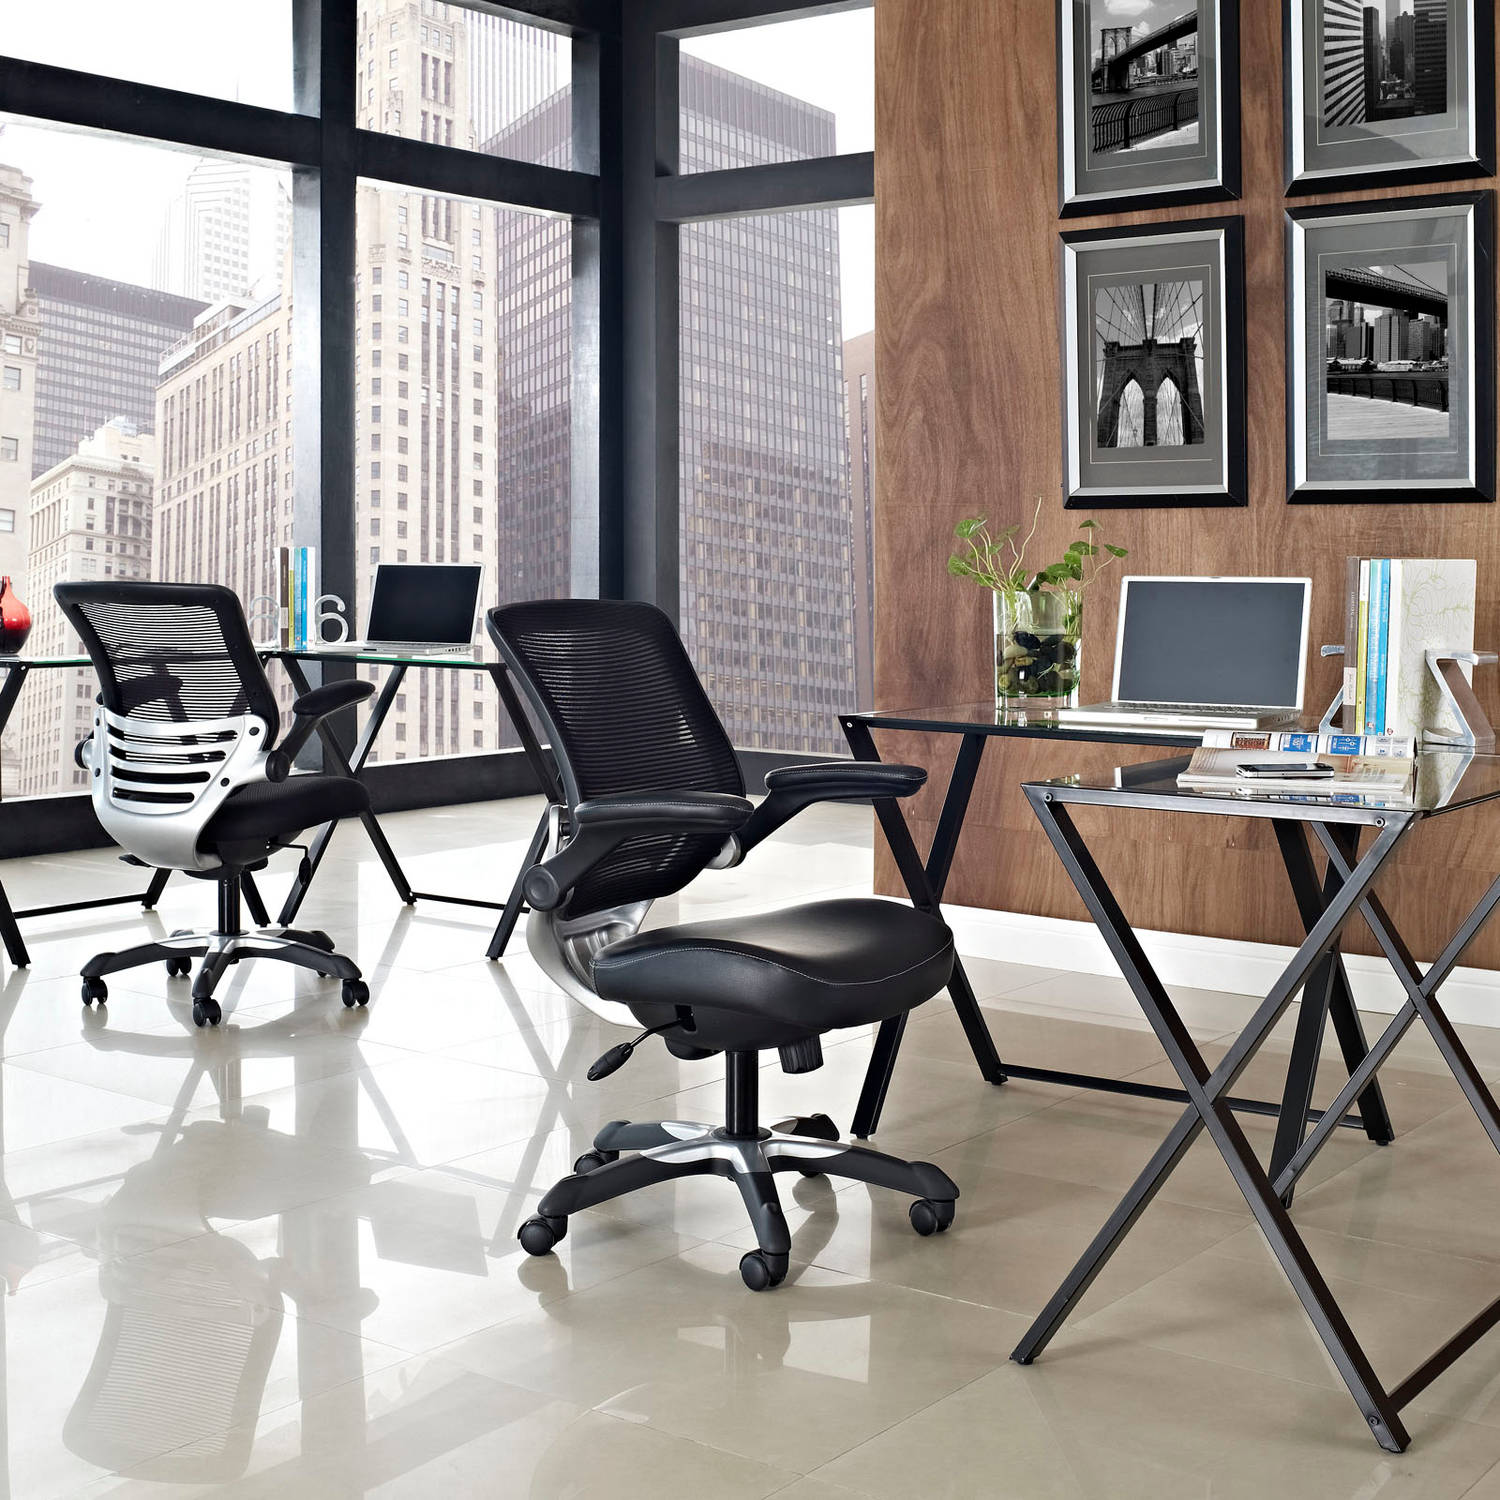 modway edge office chair with mesh back and seat, multiple colors